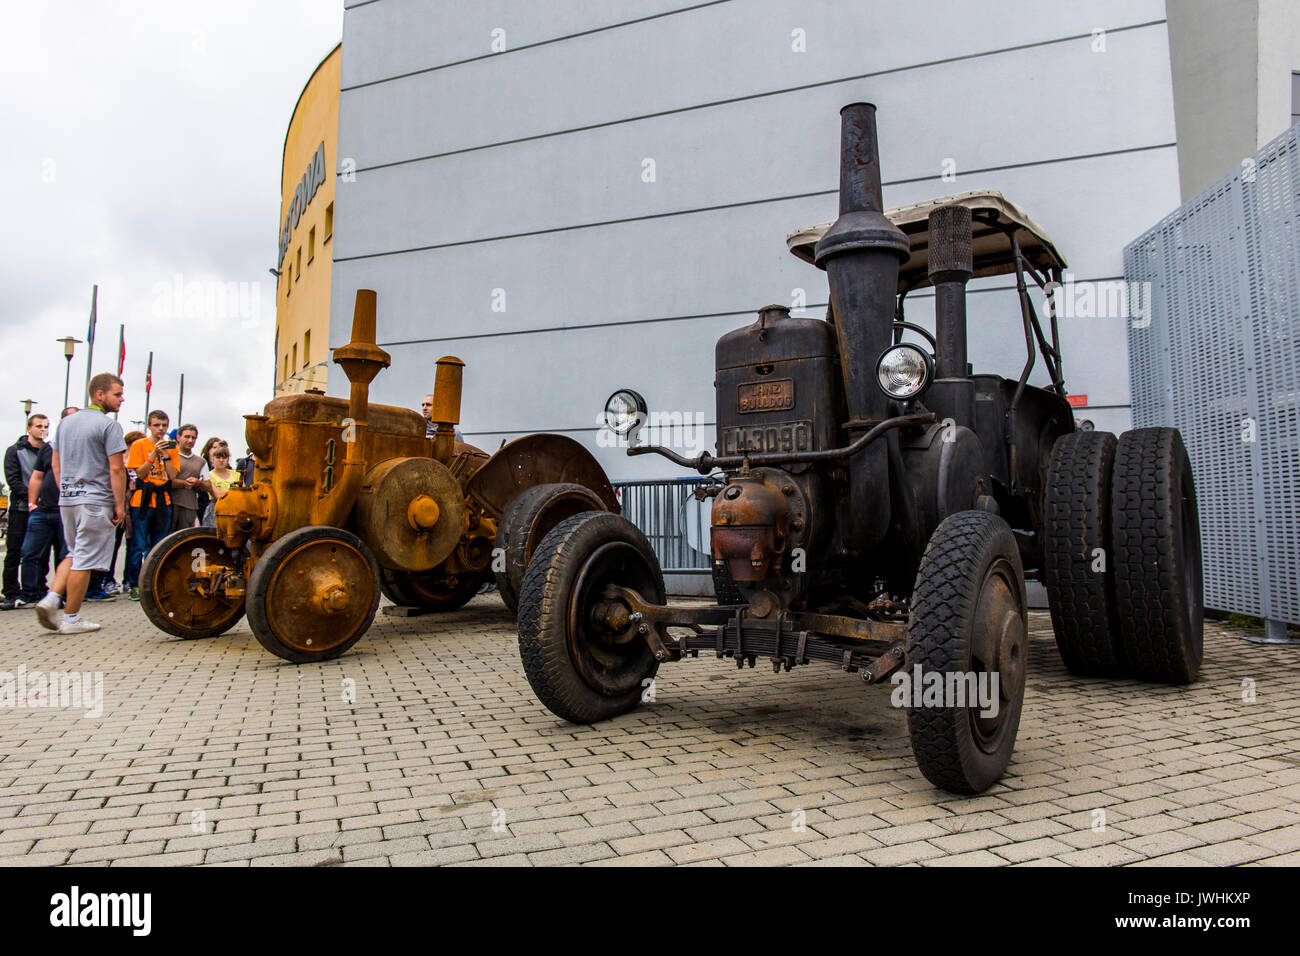 Bielsko-Biala, Poland. 12th Aug, 2017. International automotive trade fairs - MotoShow Bielsko-Biala. Old german Stock Photo